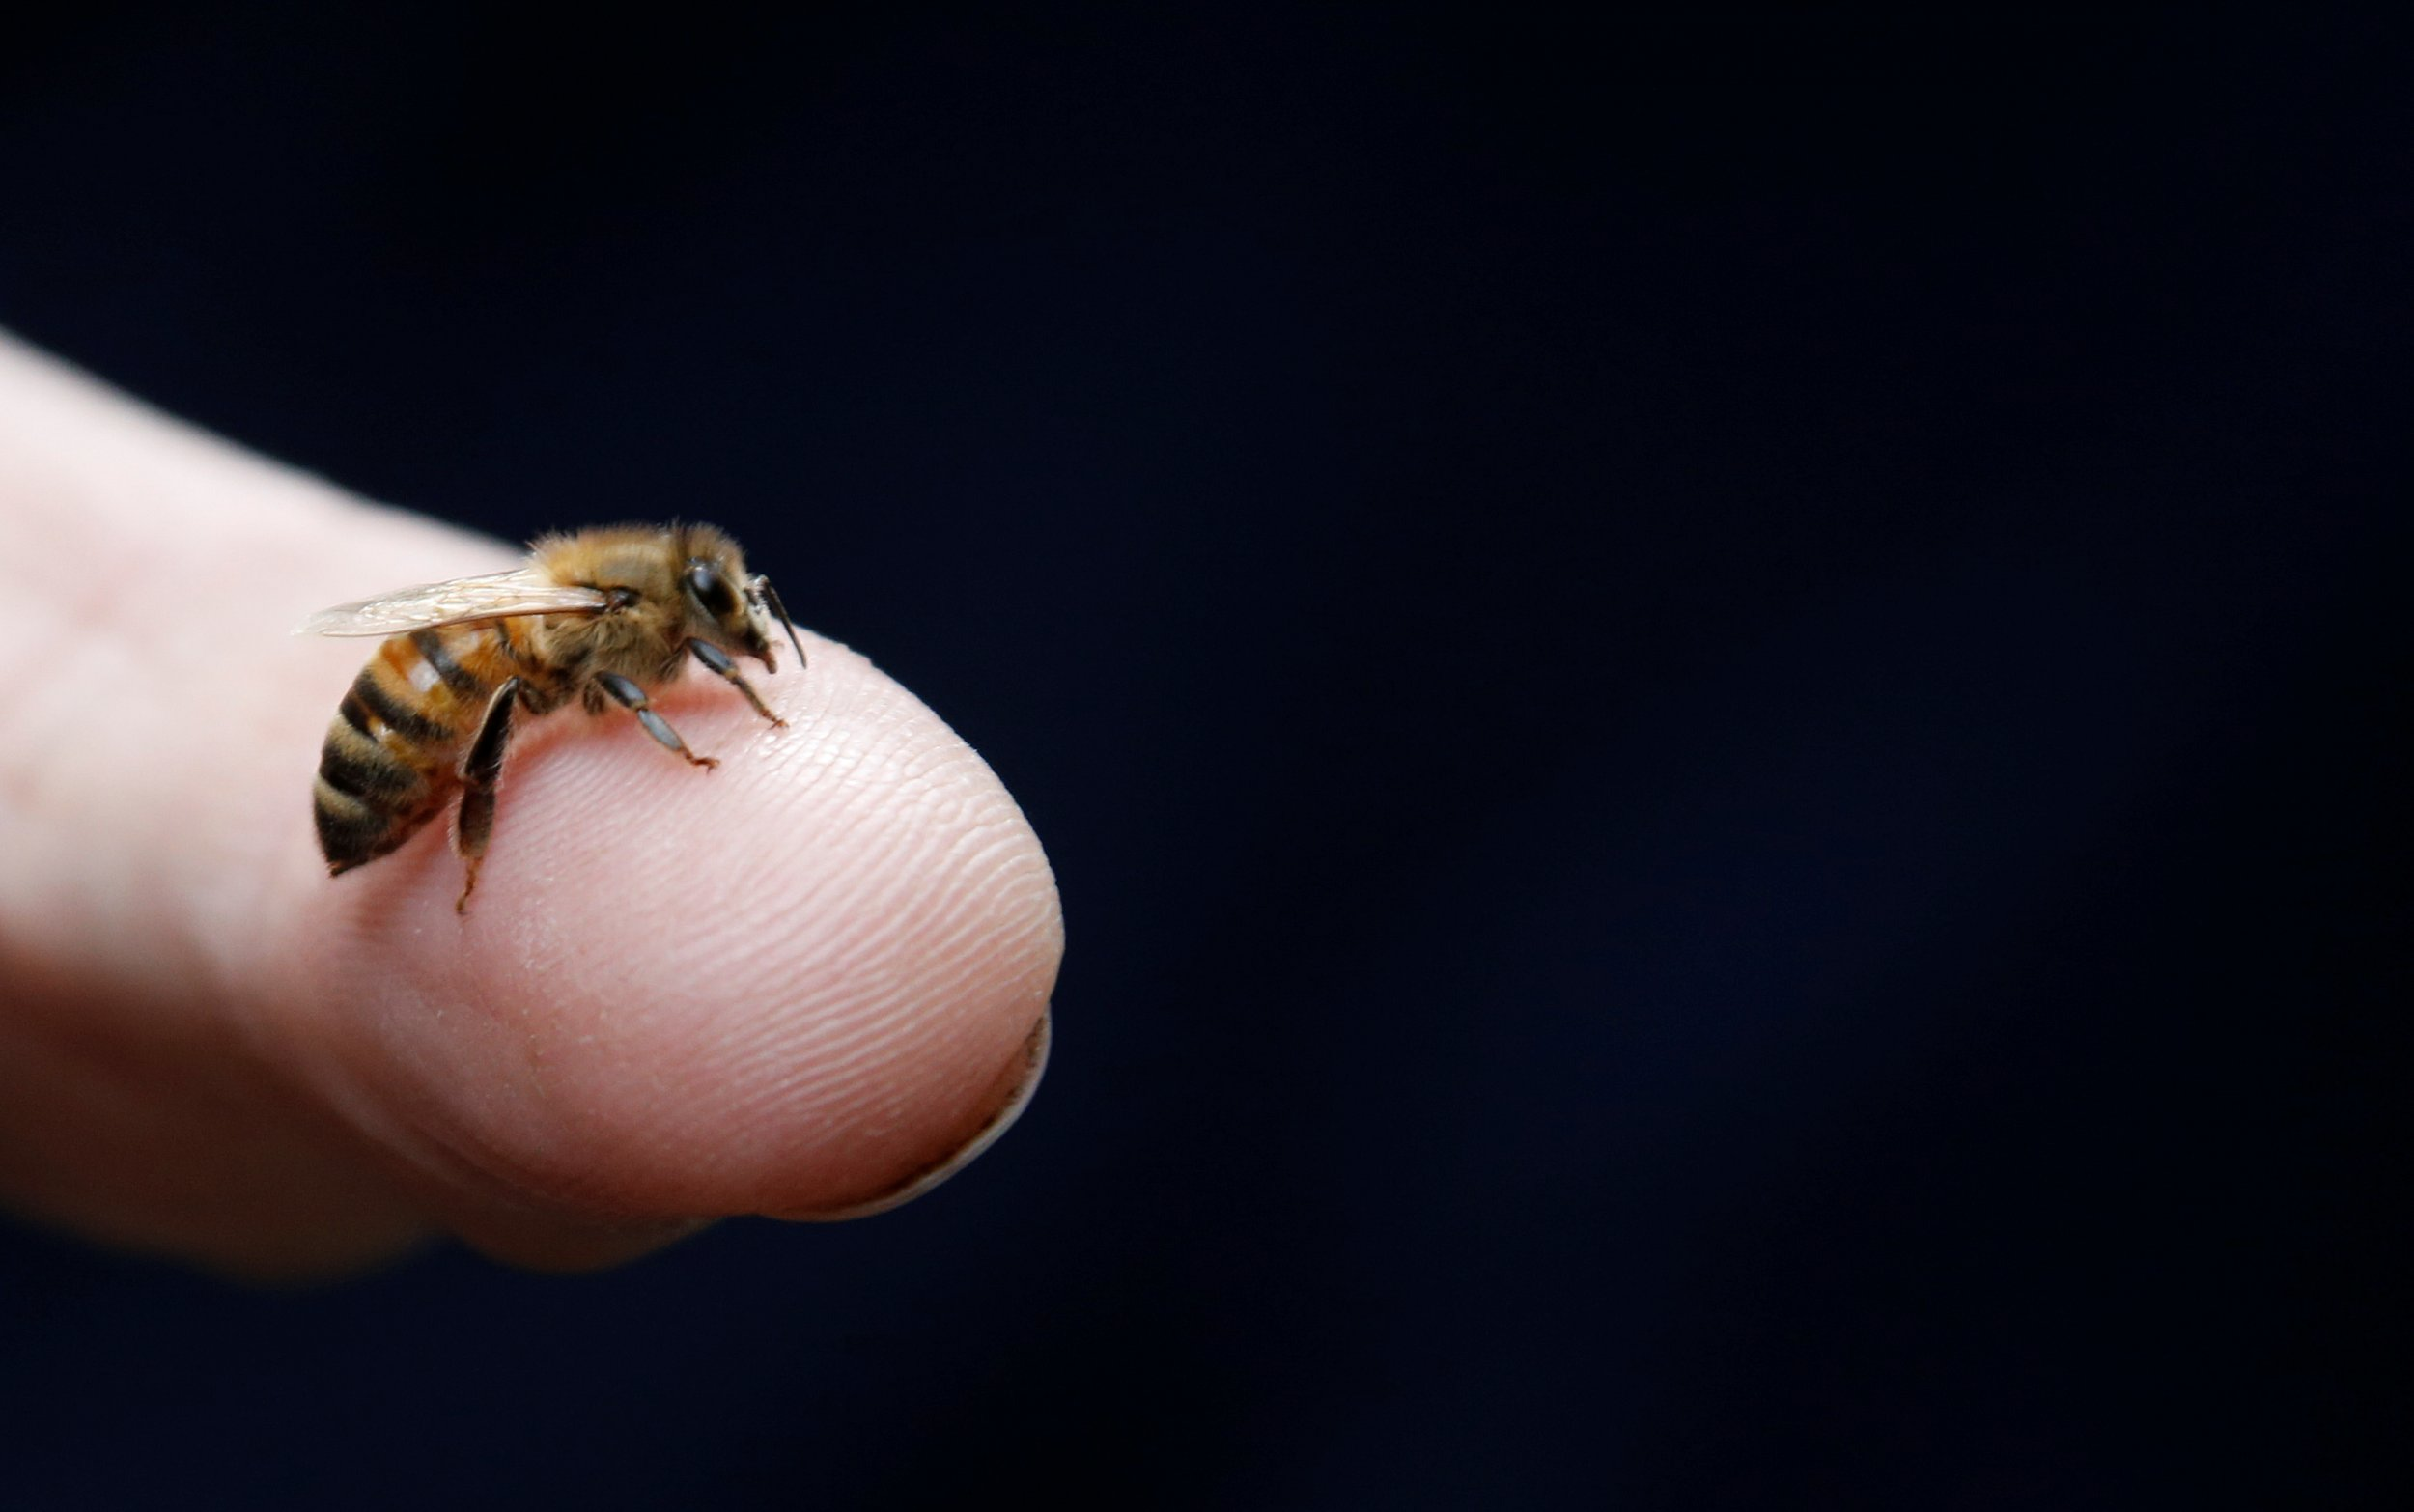 Honeybee sits on a finger